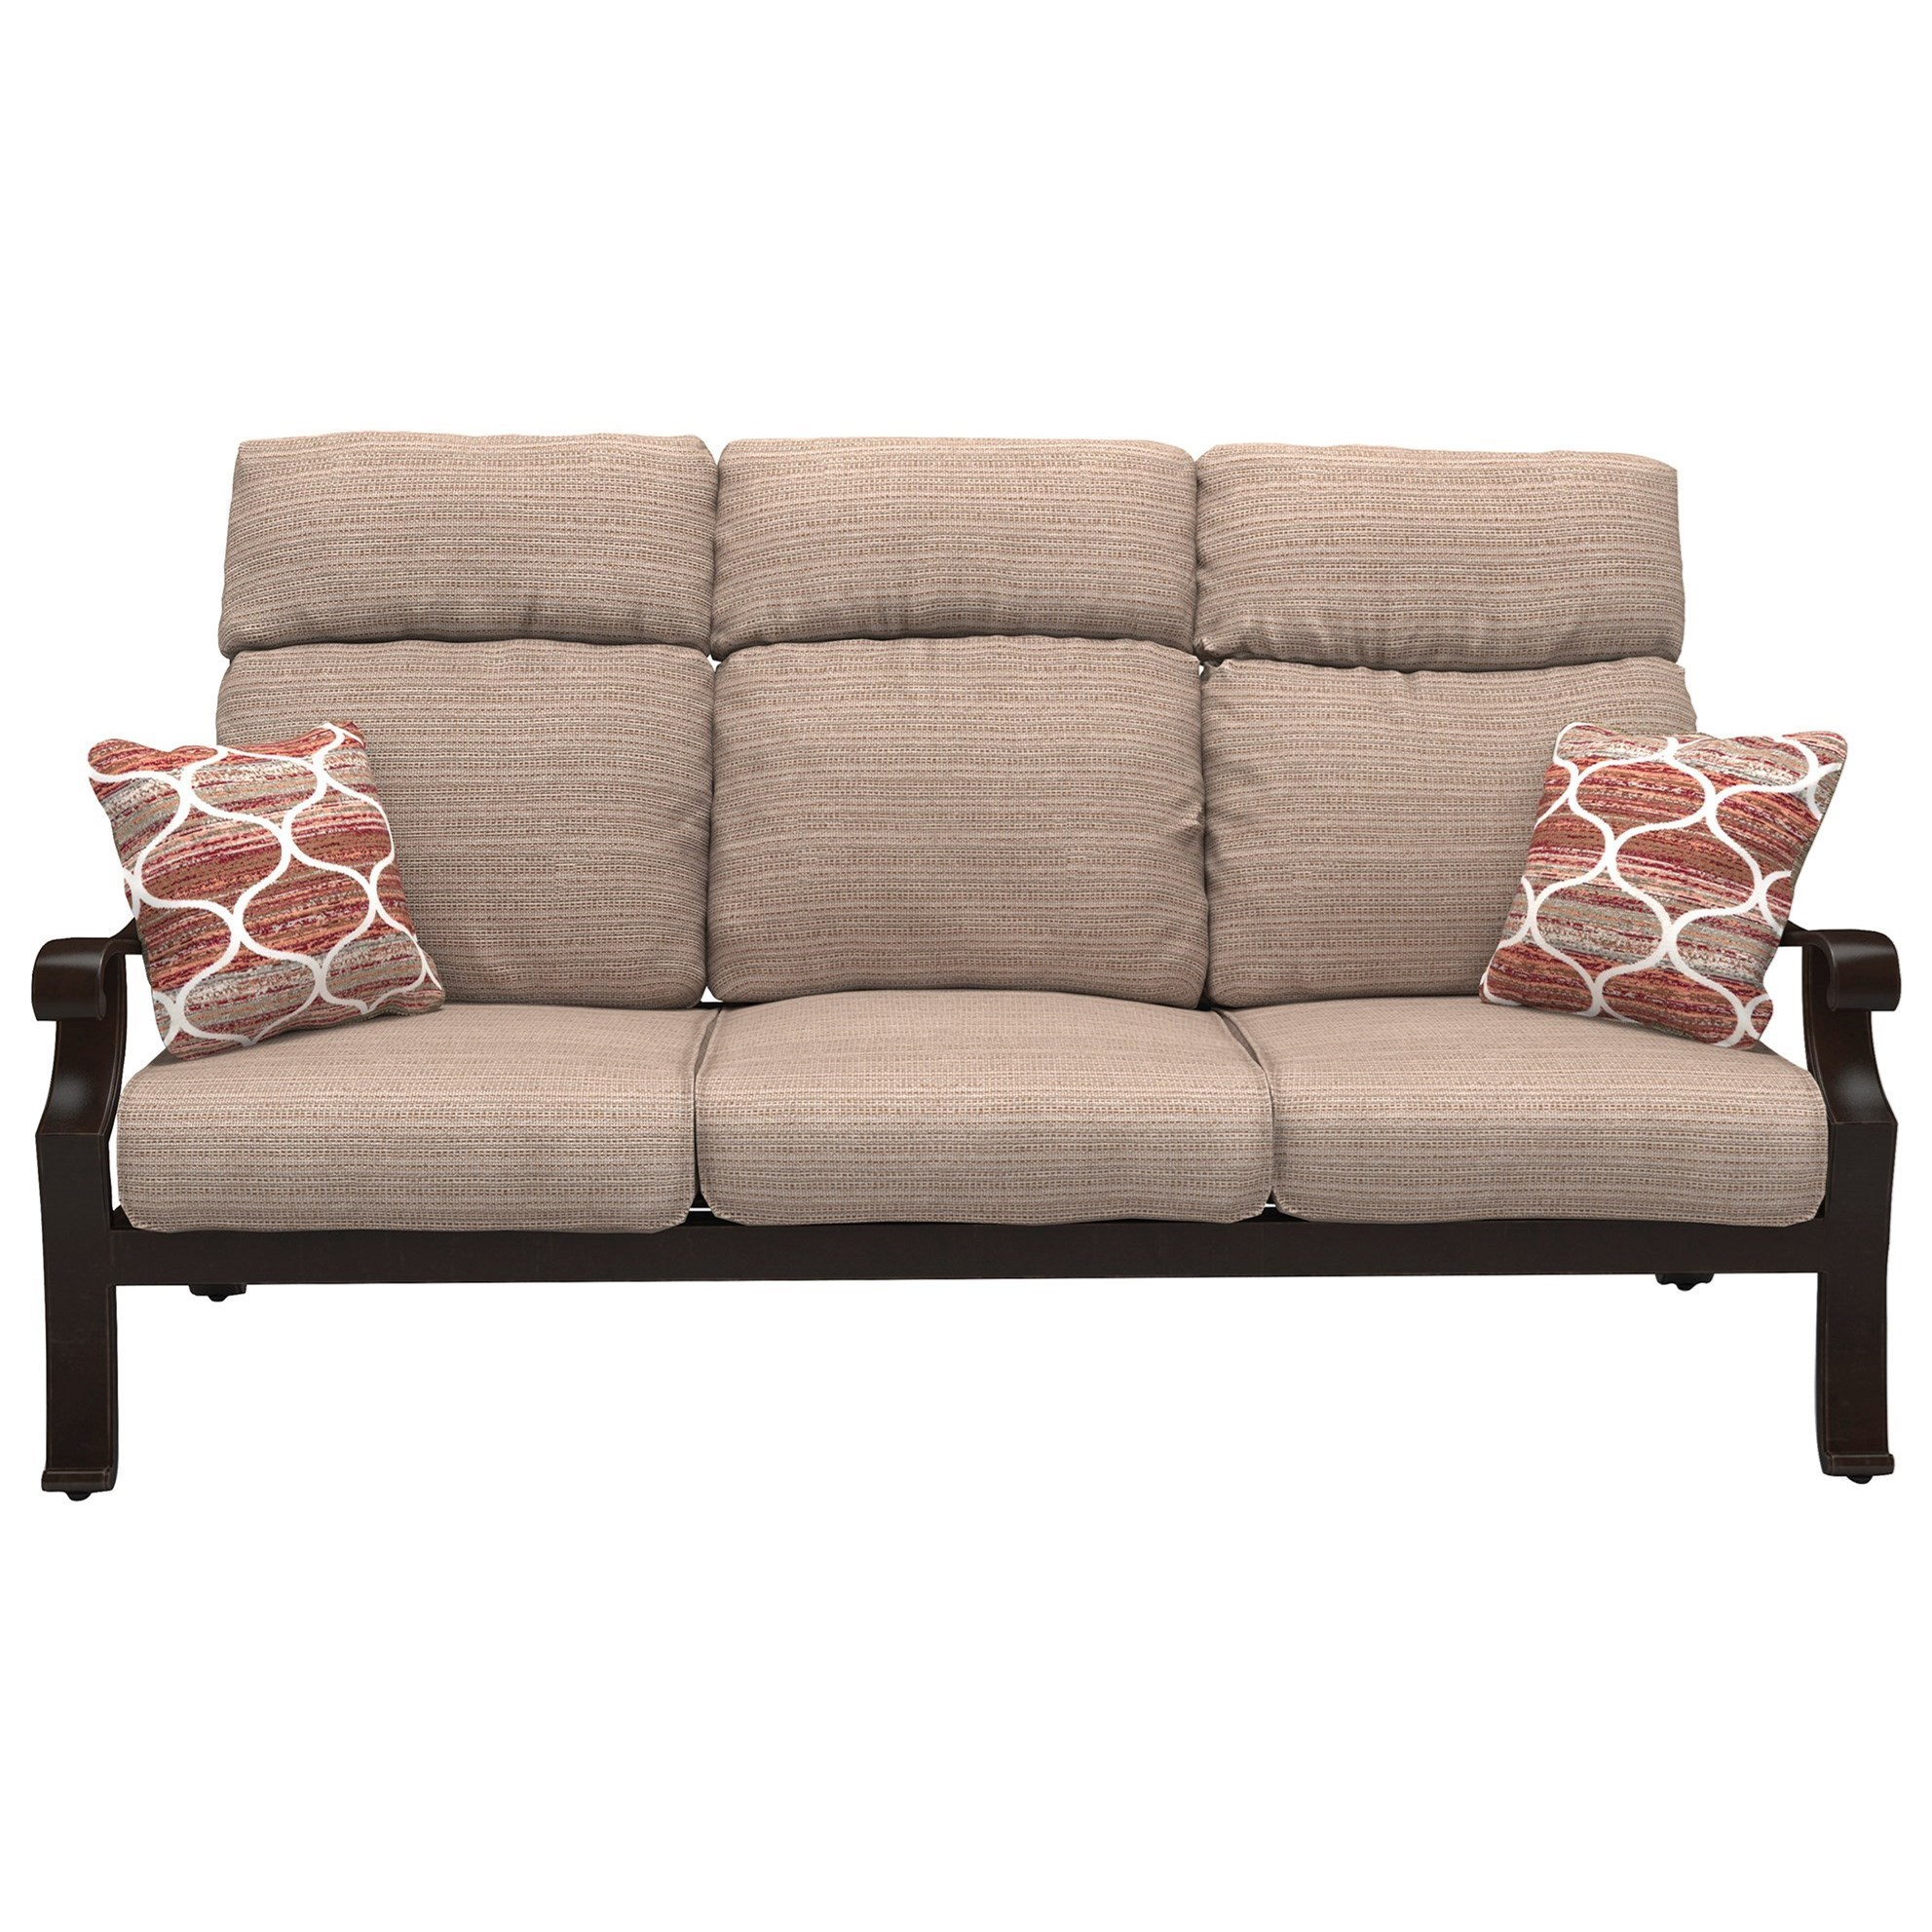 Attirant Signature Design By Ashley Chestnut RidgeSofa With Cushion ...